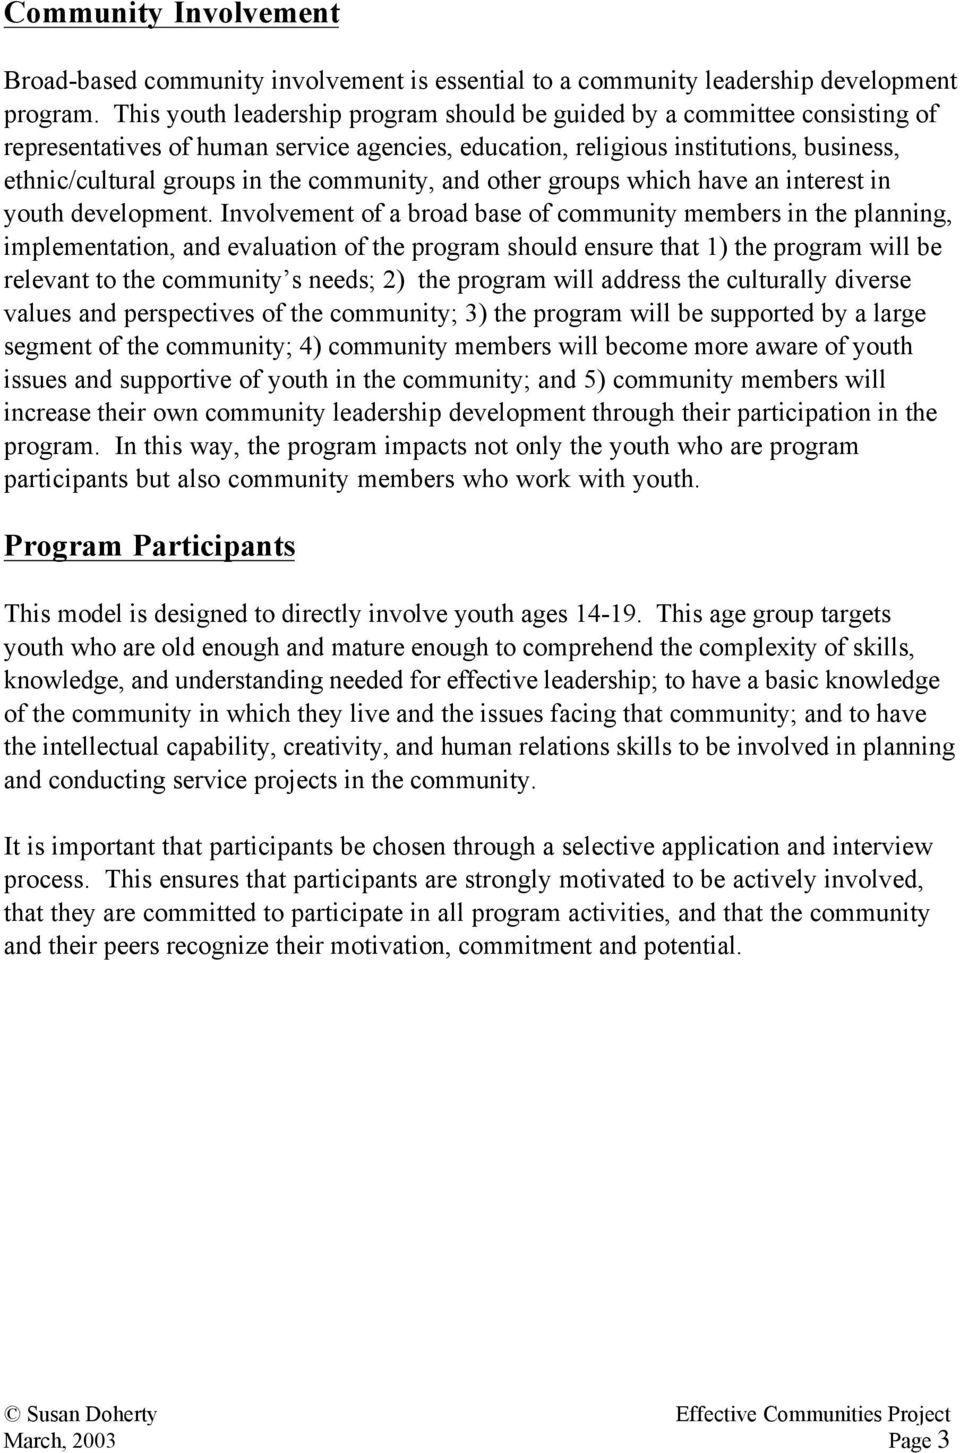 community, and other groups which have an interest in youth development.